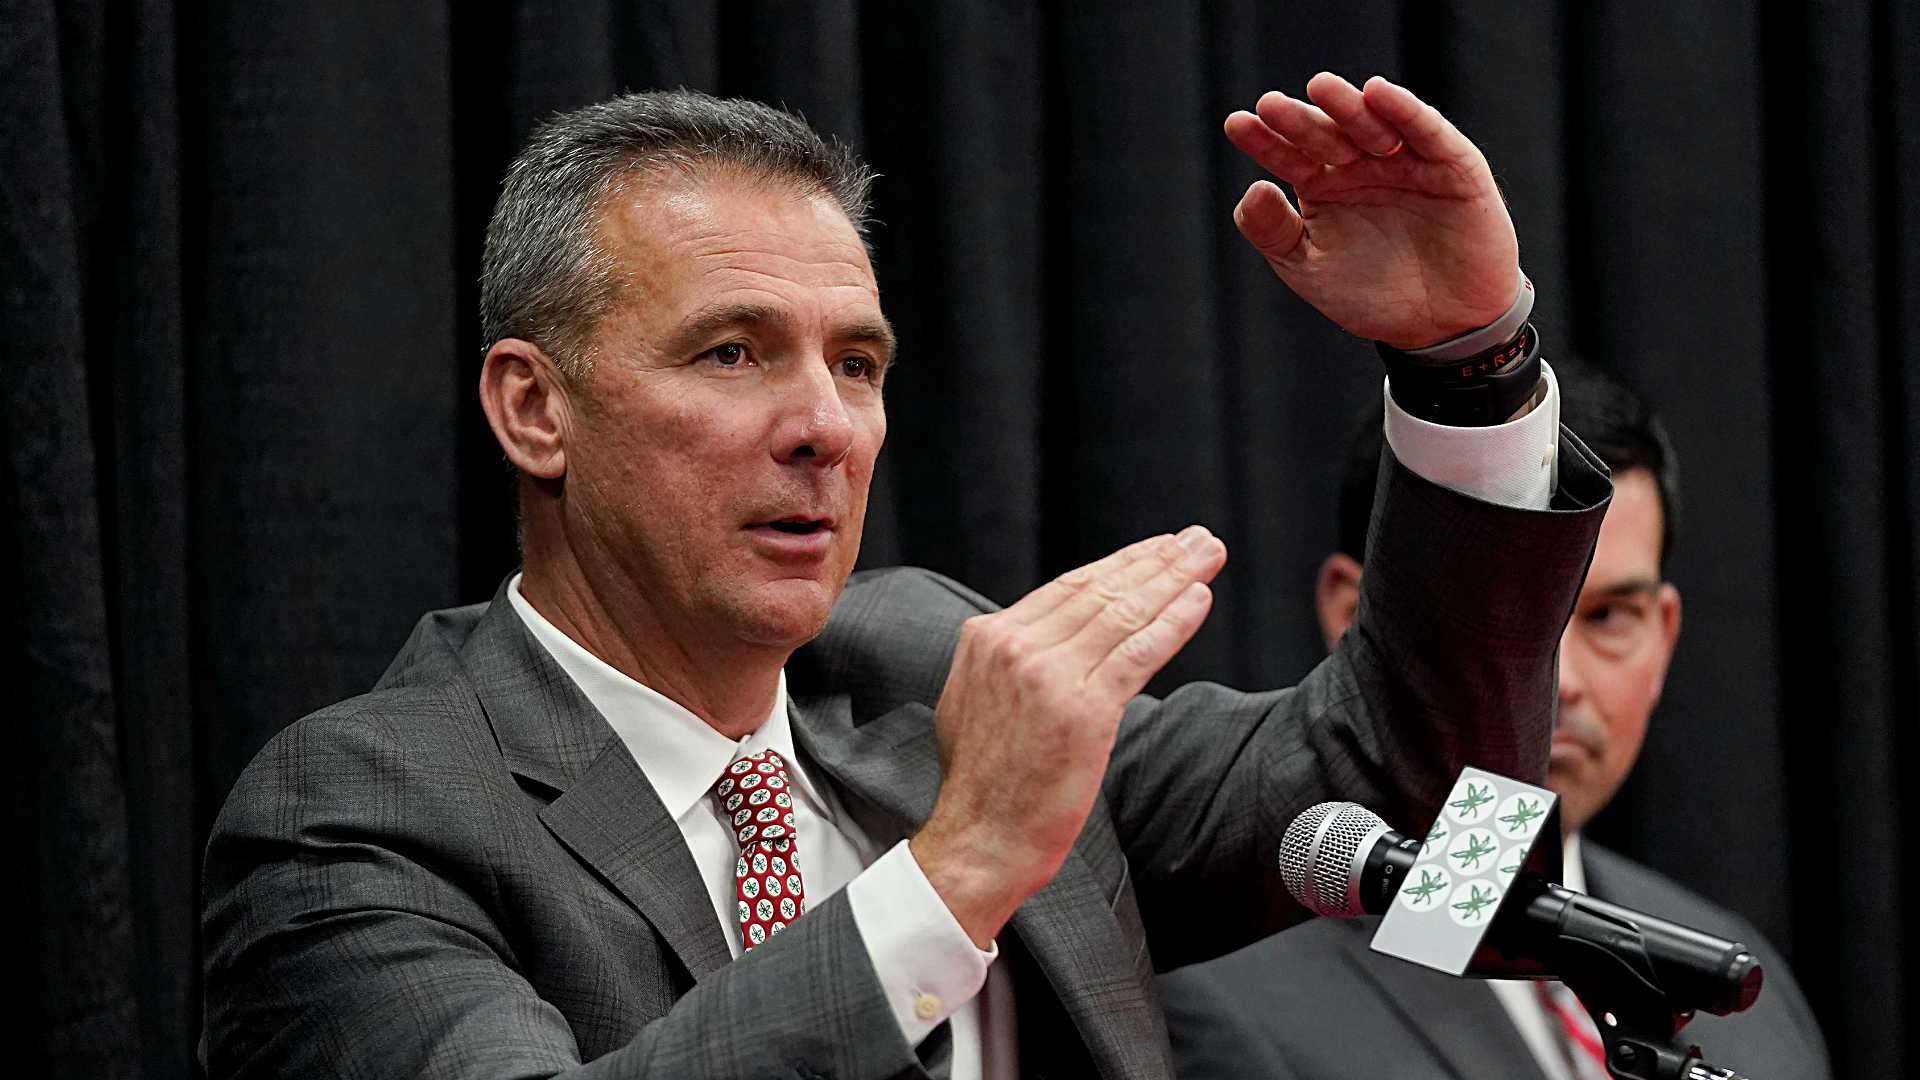 Urban Meyer Already Has Job Lined Up to Replace Ohio State Gig